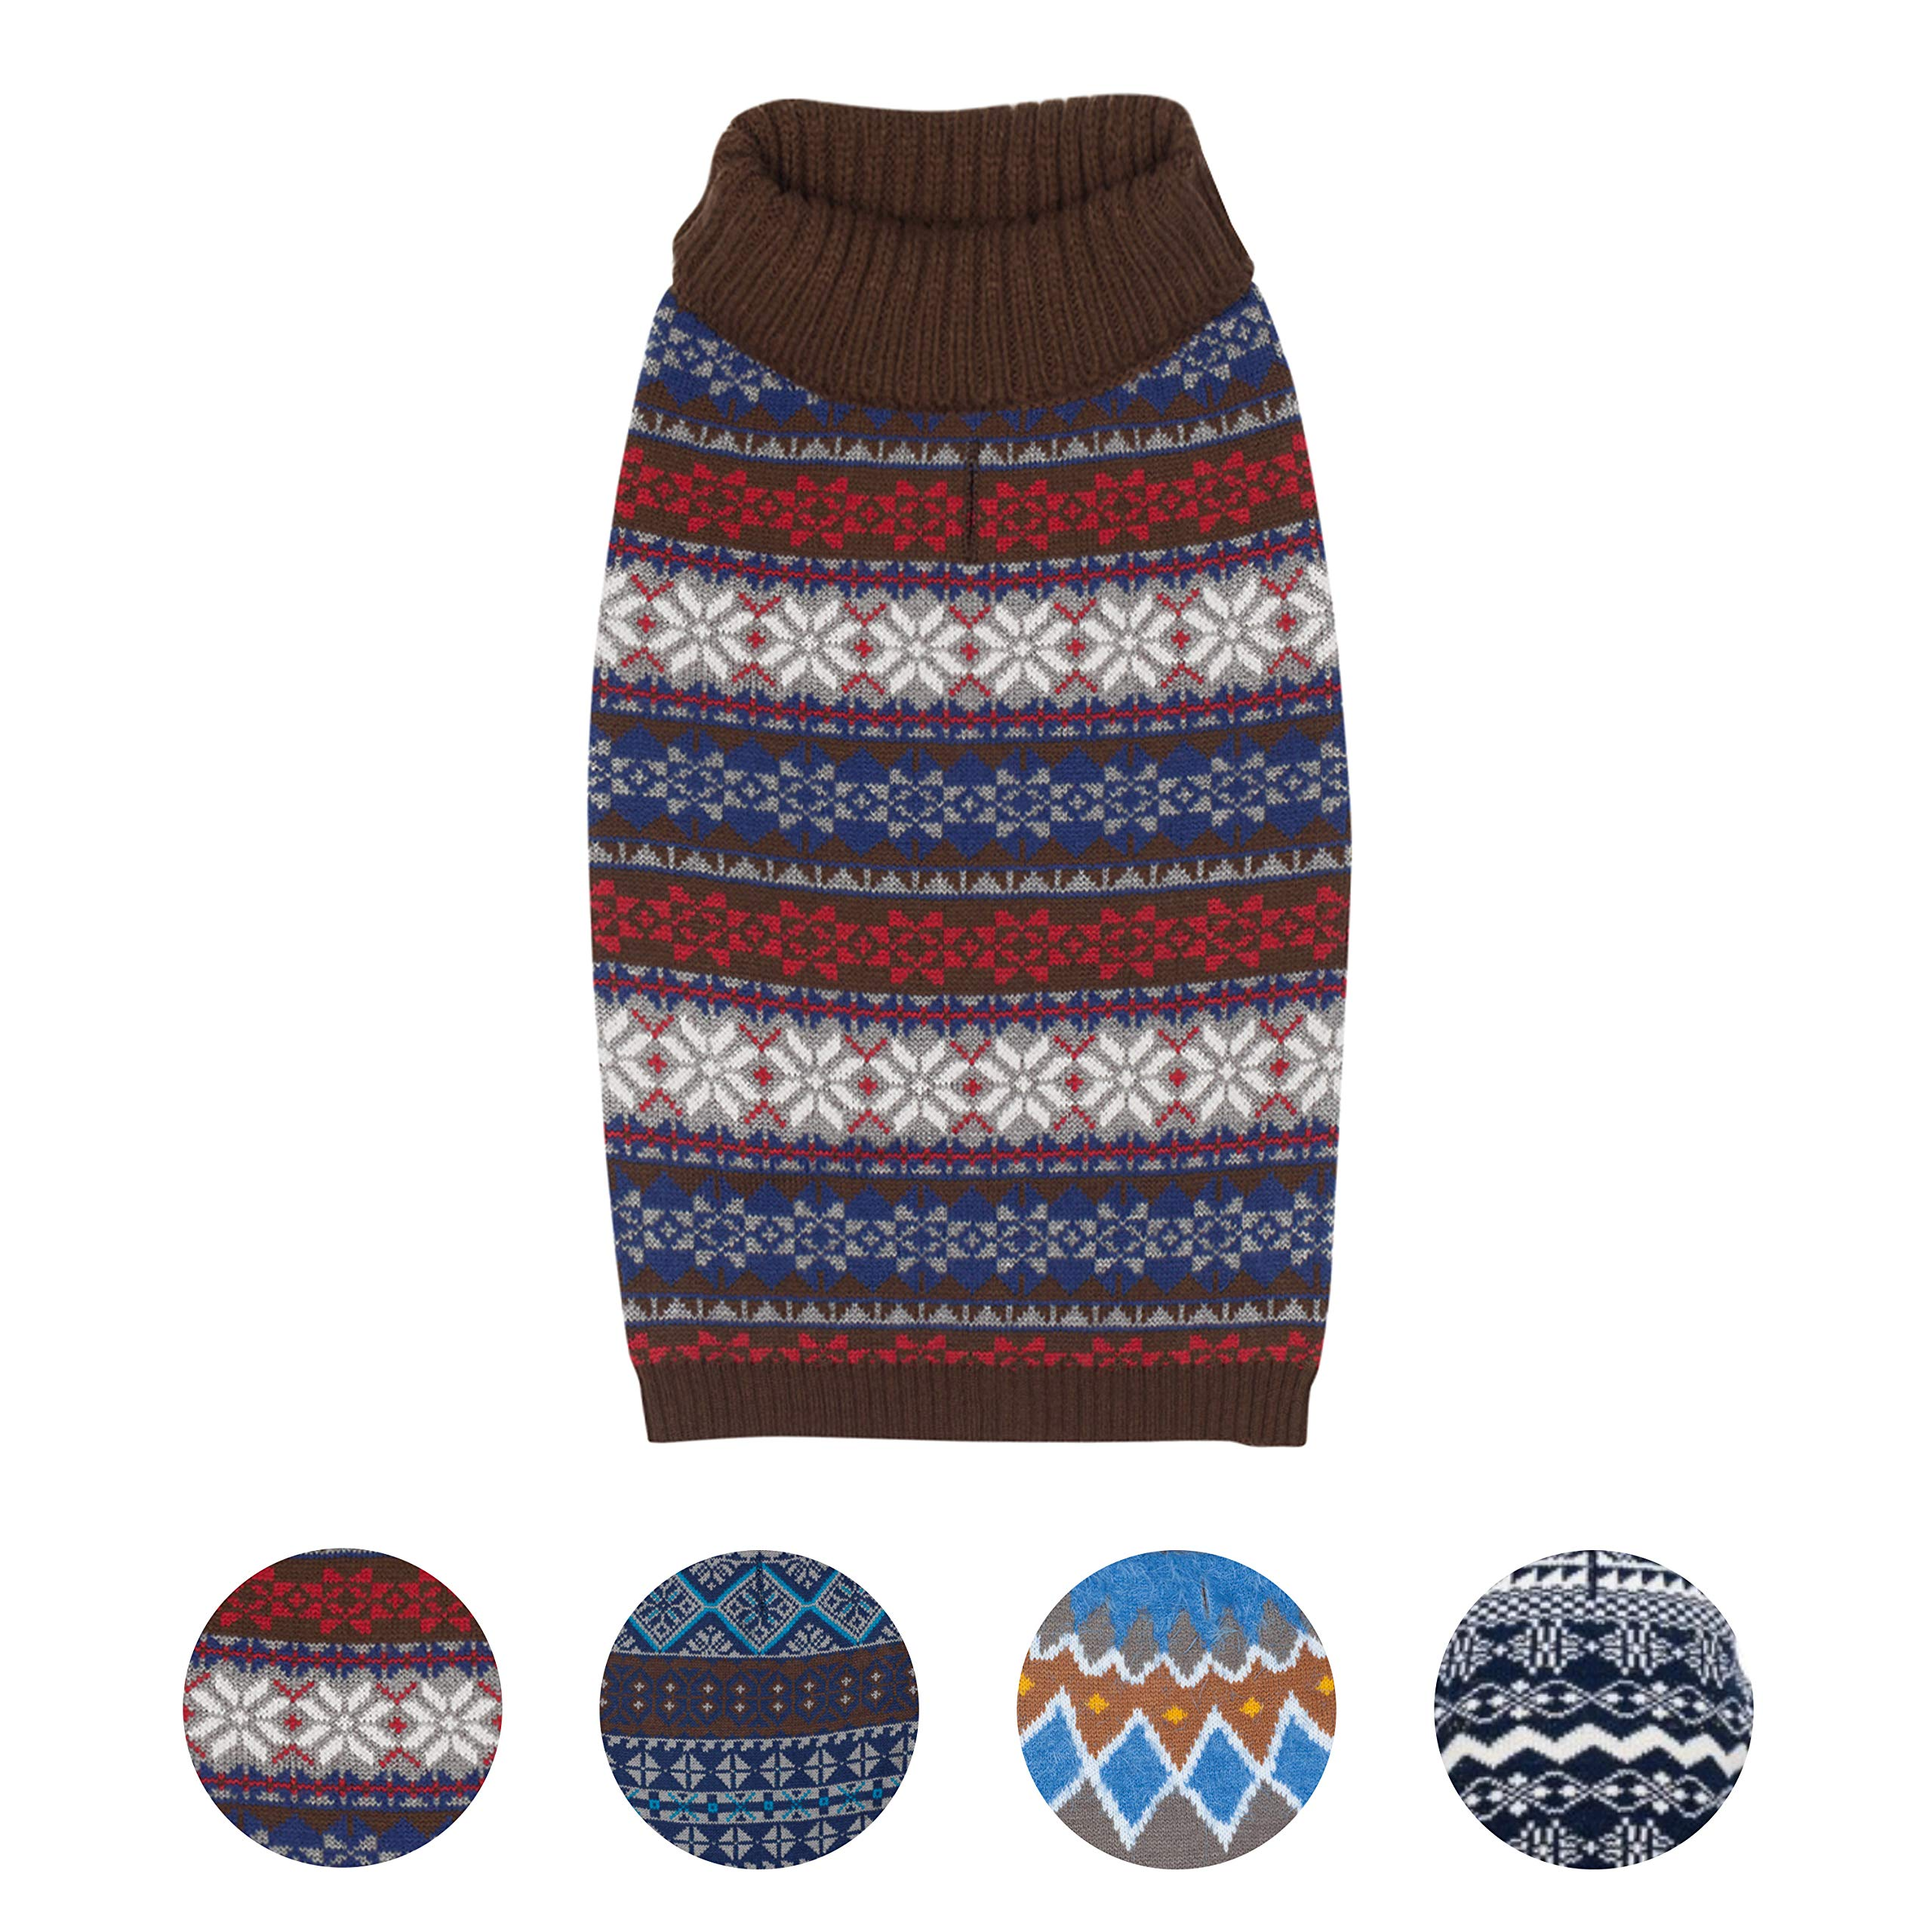 Blueberry Pet 4 Patterns Dark Tone Cool Winter Bloom Designer Pullover Dog Sweater in Cocoa Brown, Back Length 16'', Pack of 1 Clothes for Dogs